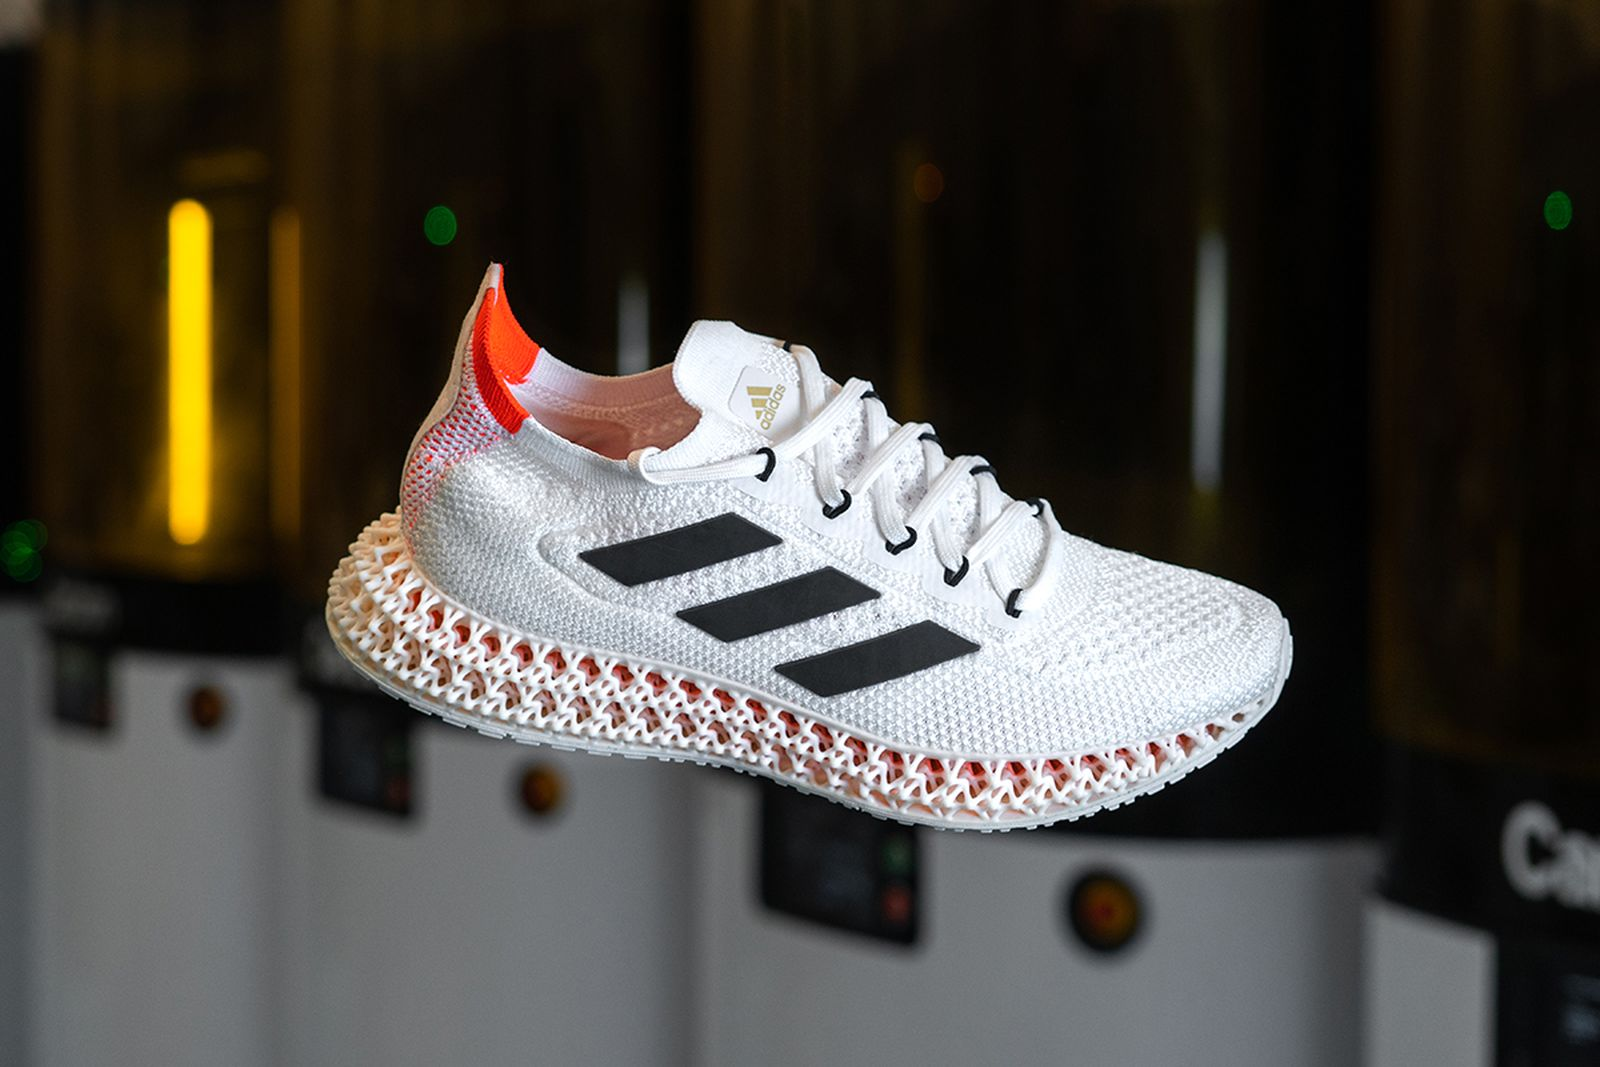 adidas-4dfwd-tokyo-release-date-price-10